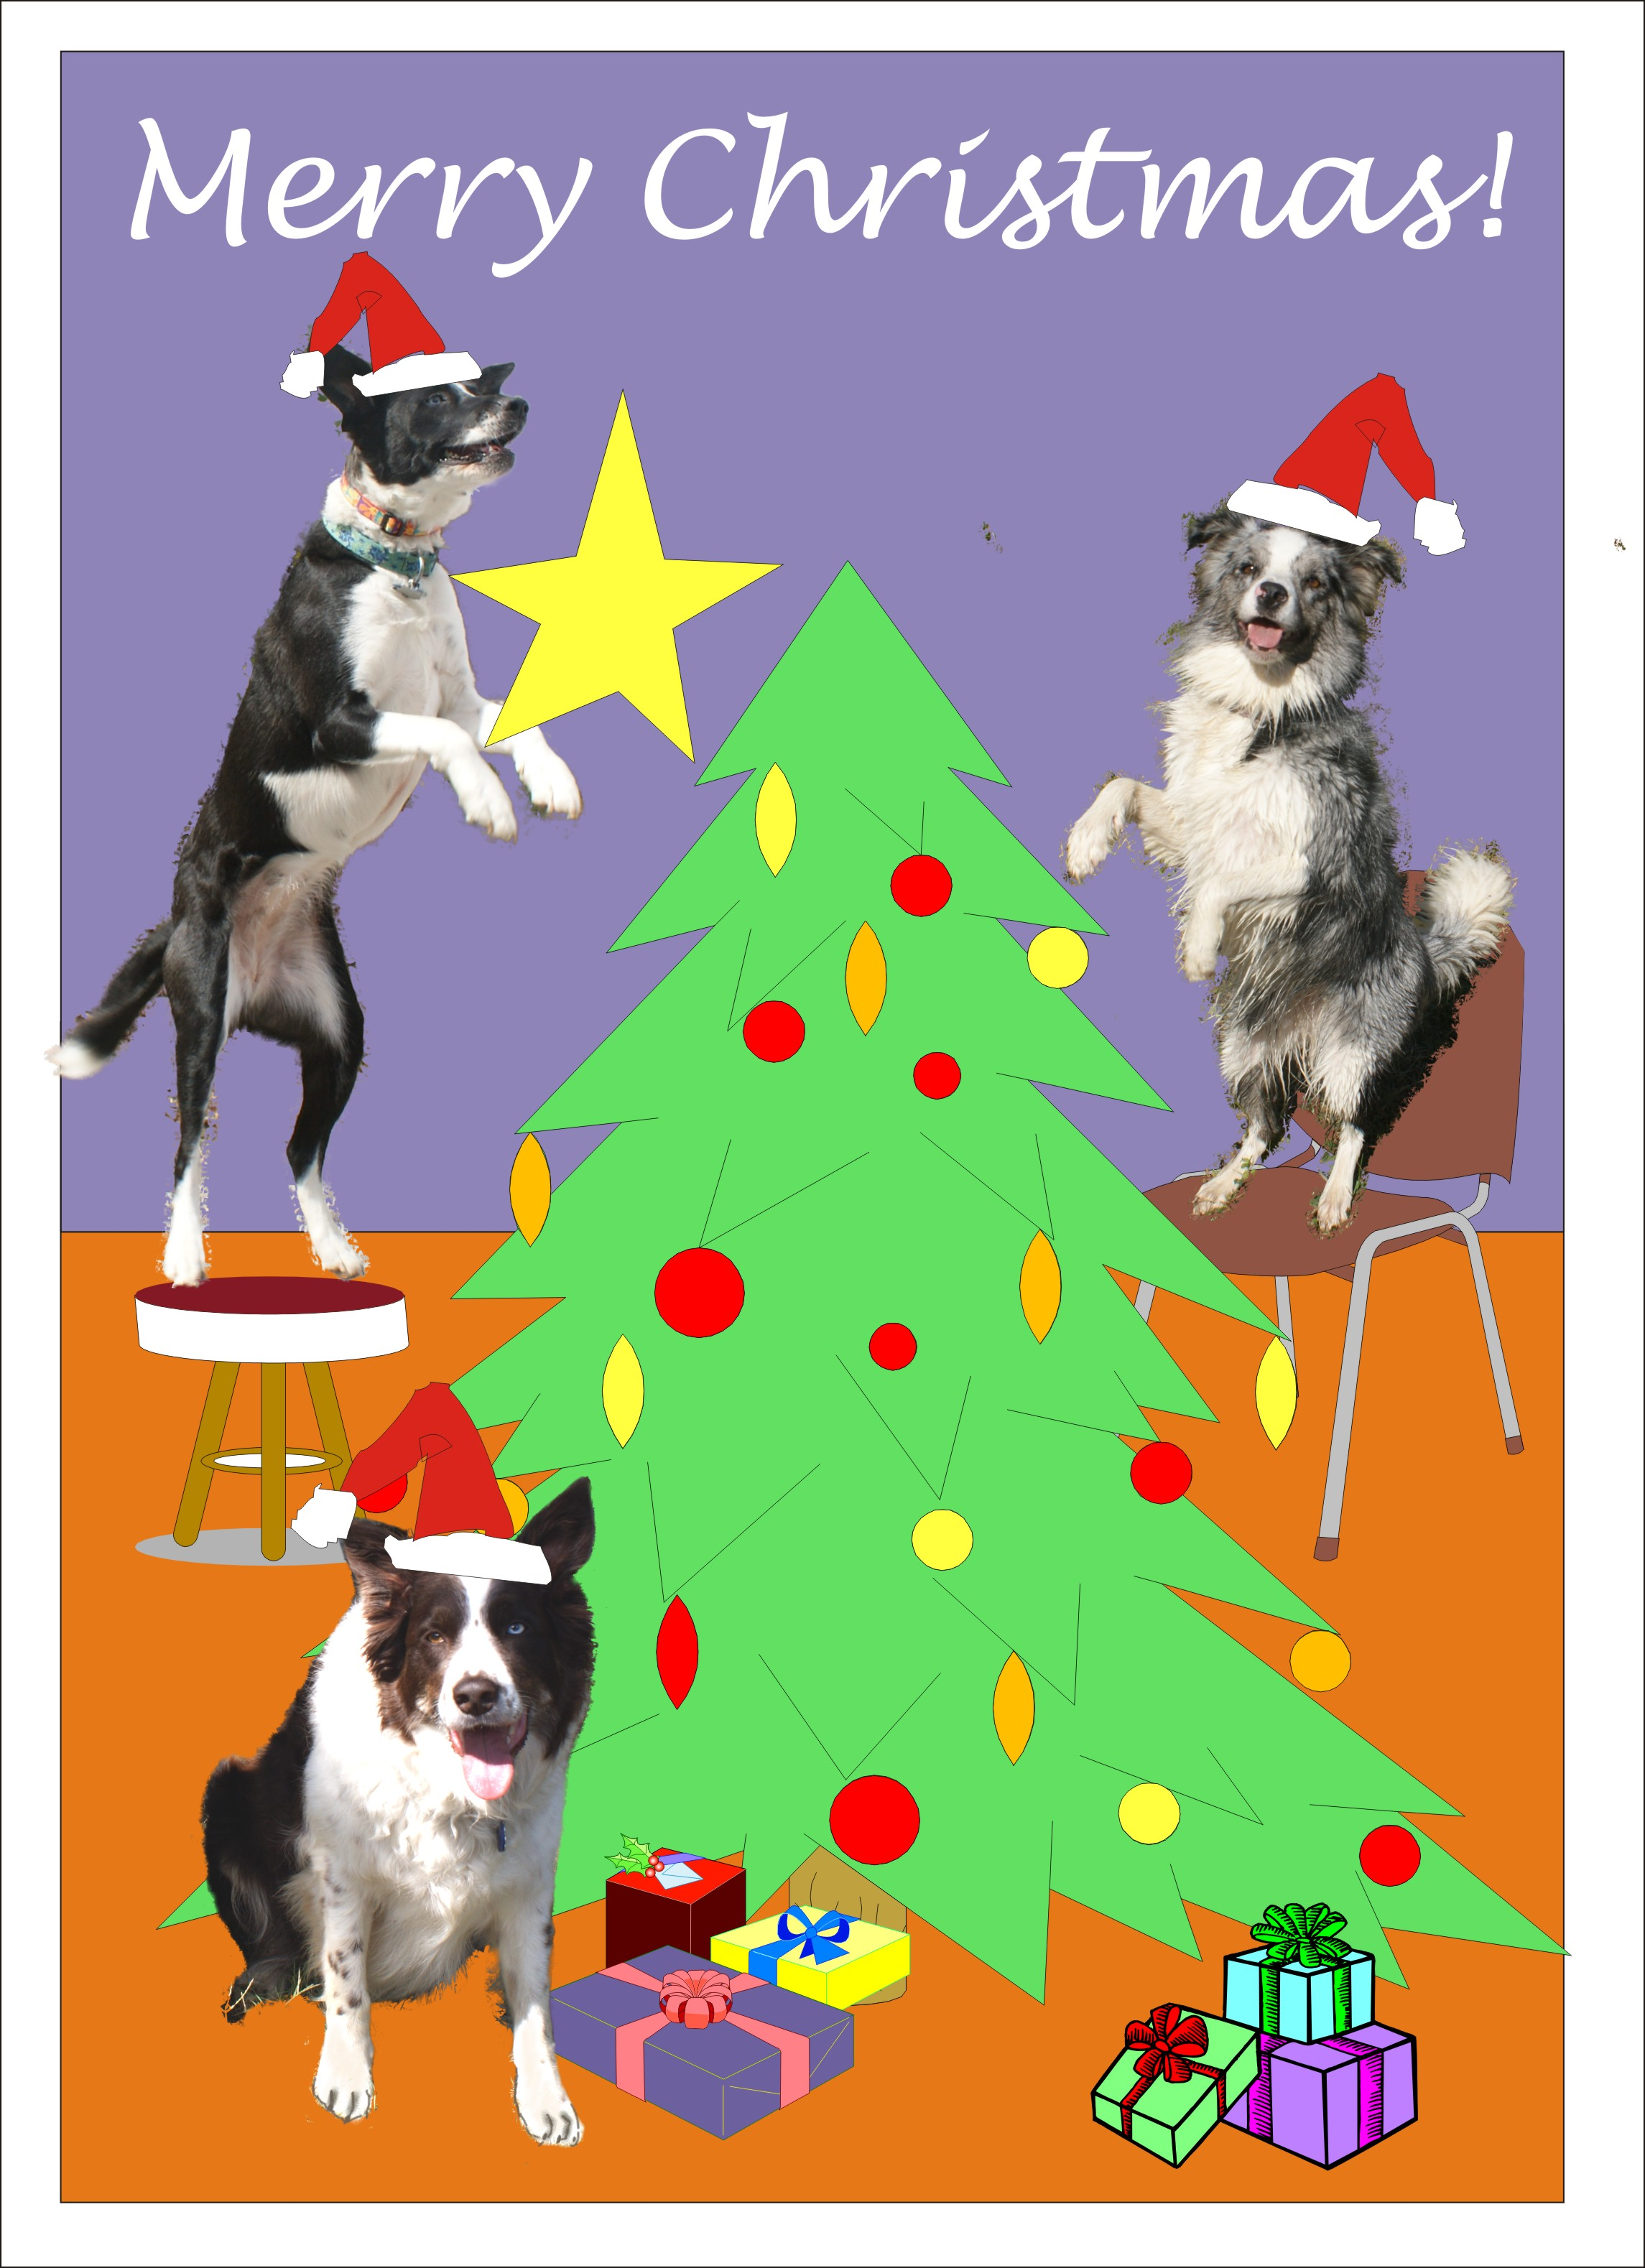 Leaping Christmas Border Collies - $2.75 : Muddy Paws Greeting Cards